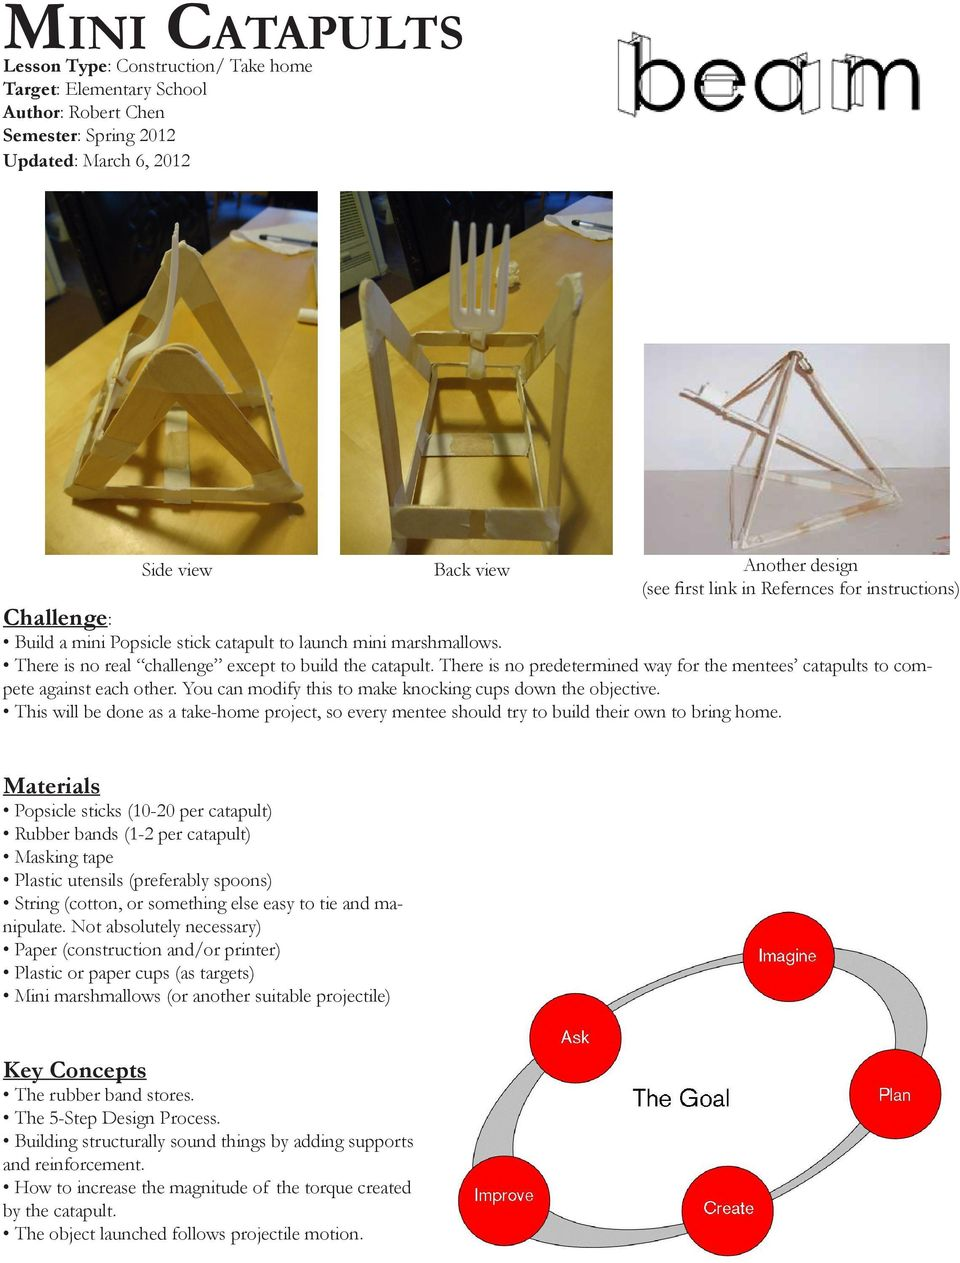 Mini Catapults Lesson Type Construction Take Home Target Catapult Motion Diagram Onager There Is No Predetermined Way For The Mentees To Compete Against Each Other You